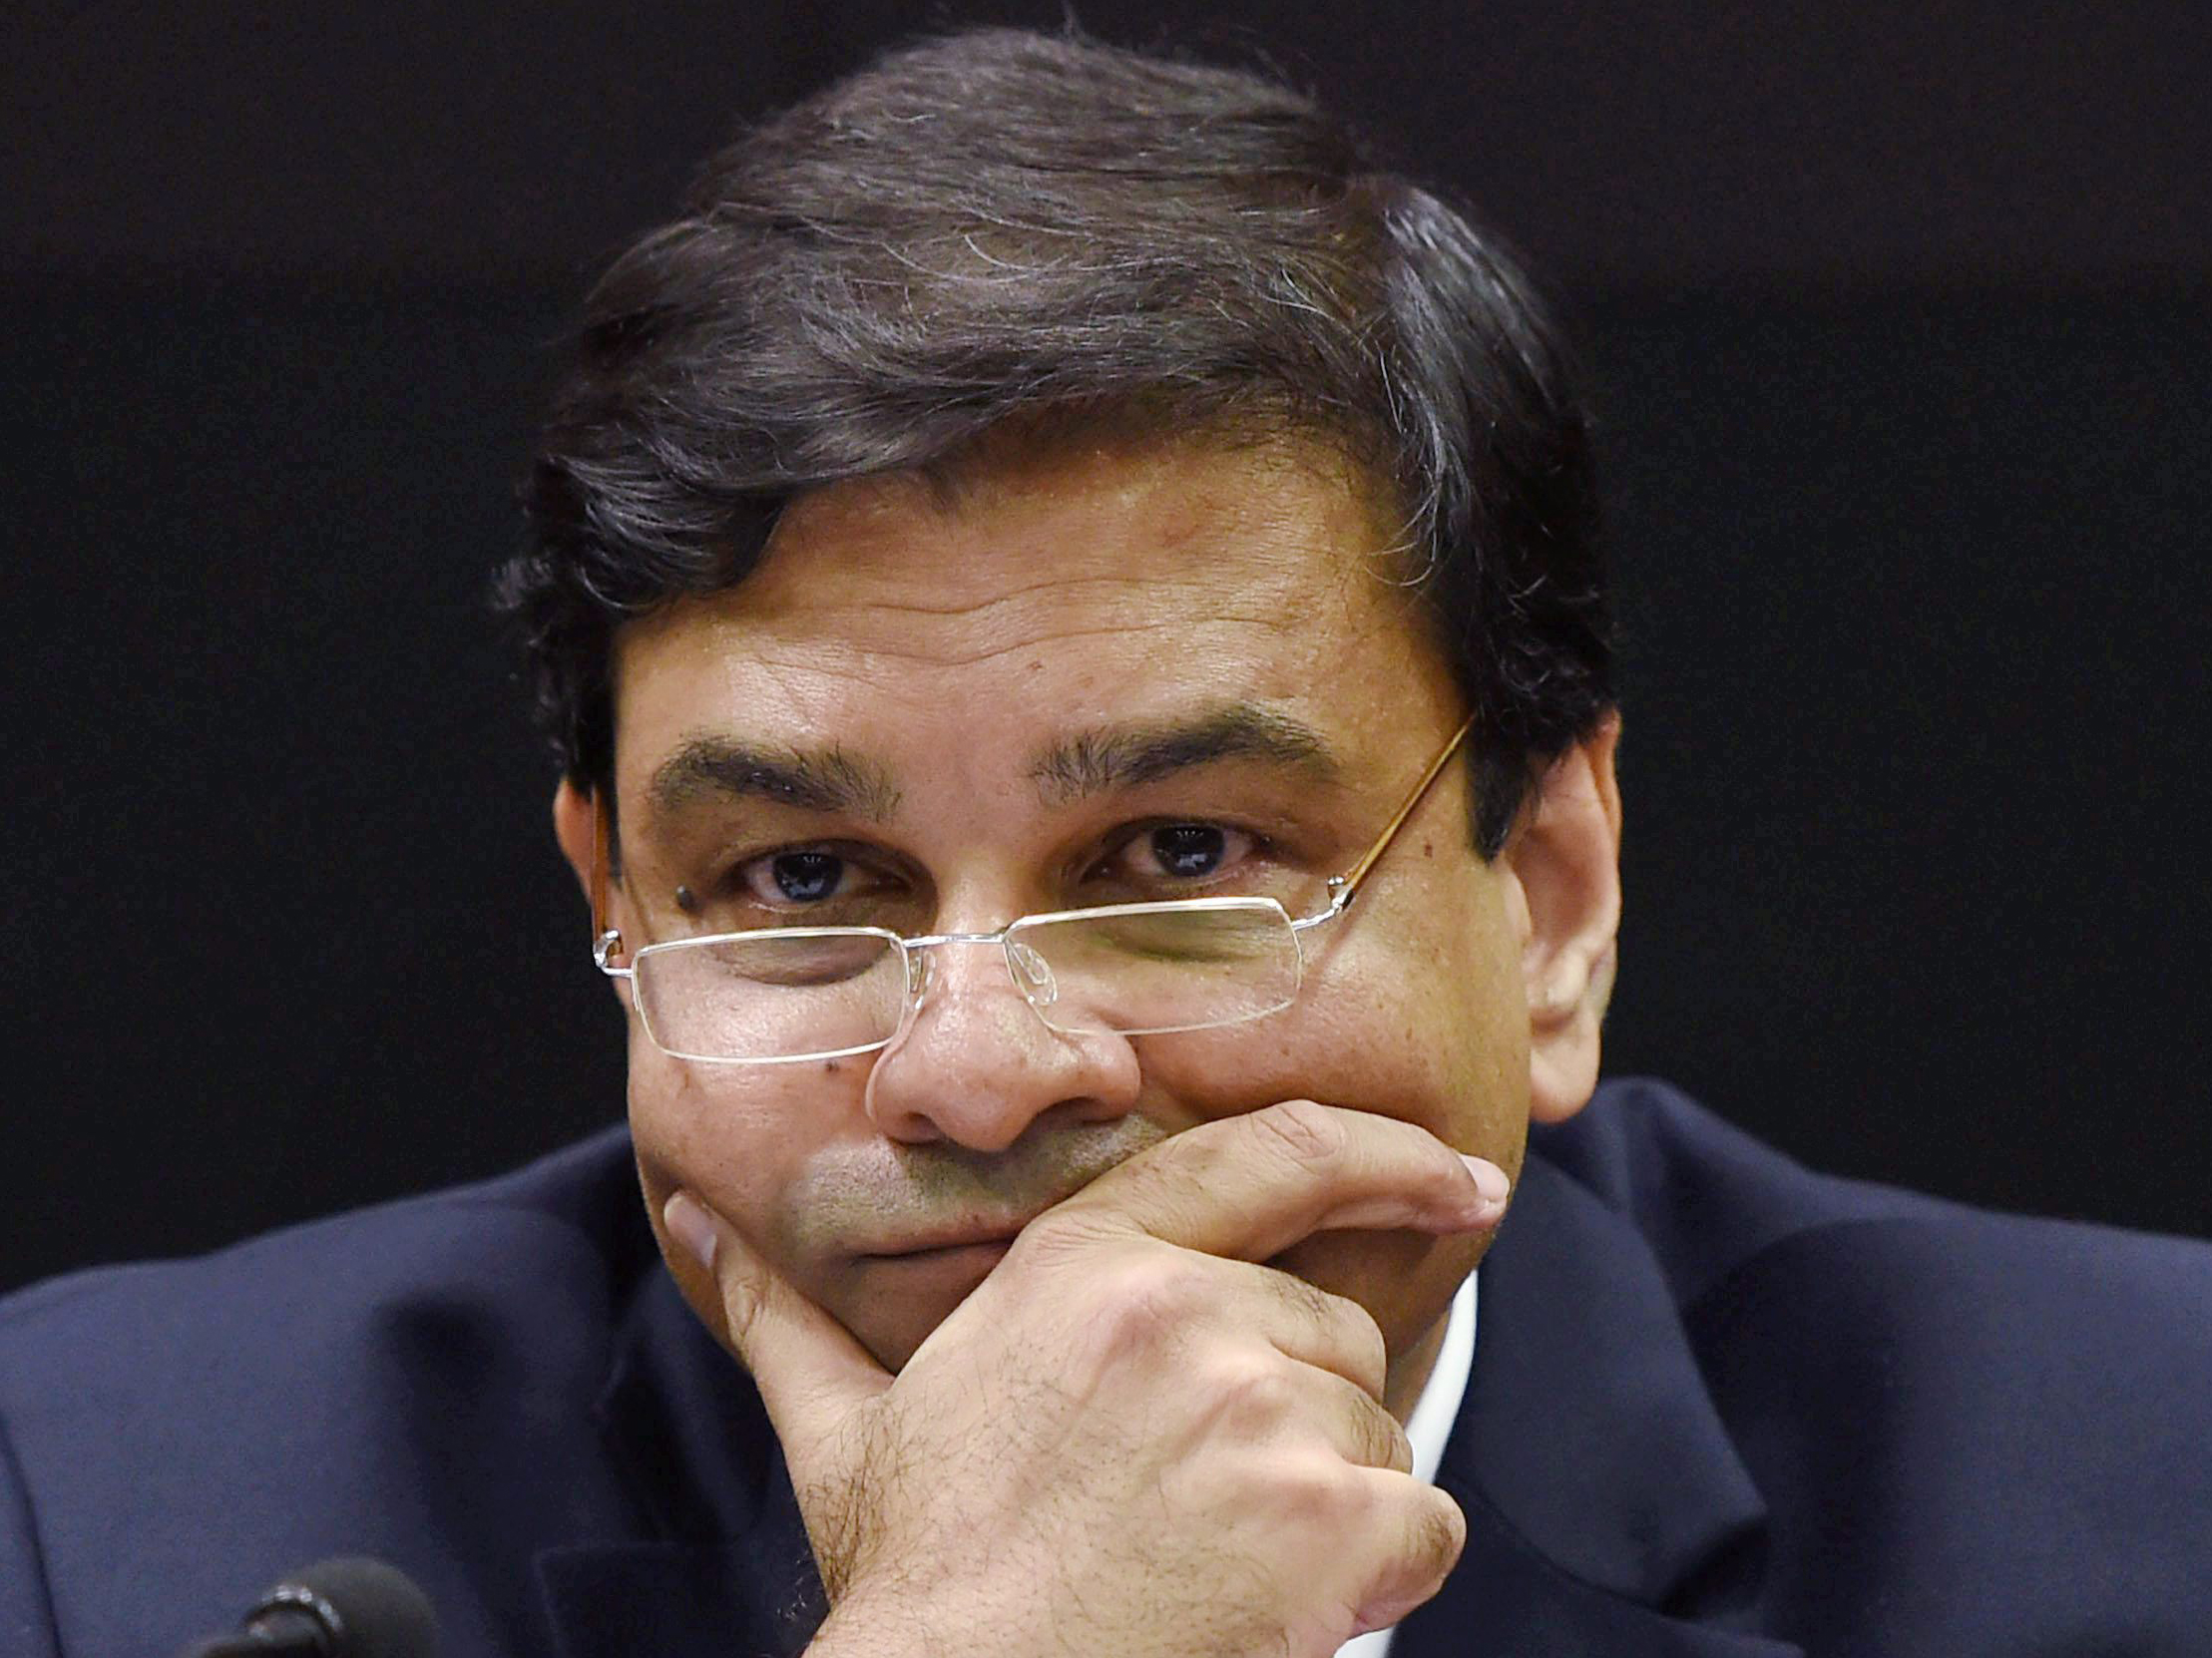 GOTCHA!  We mean Urjit Patel, not Vijay Mallya